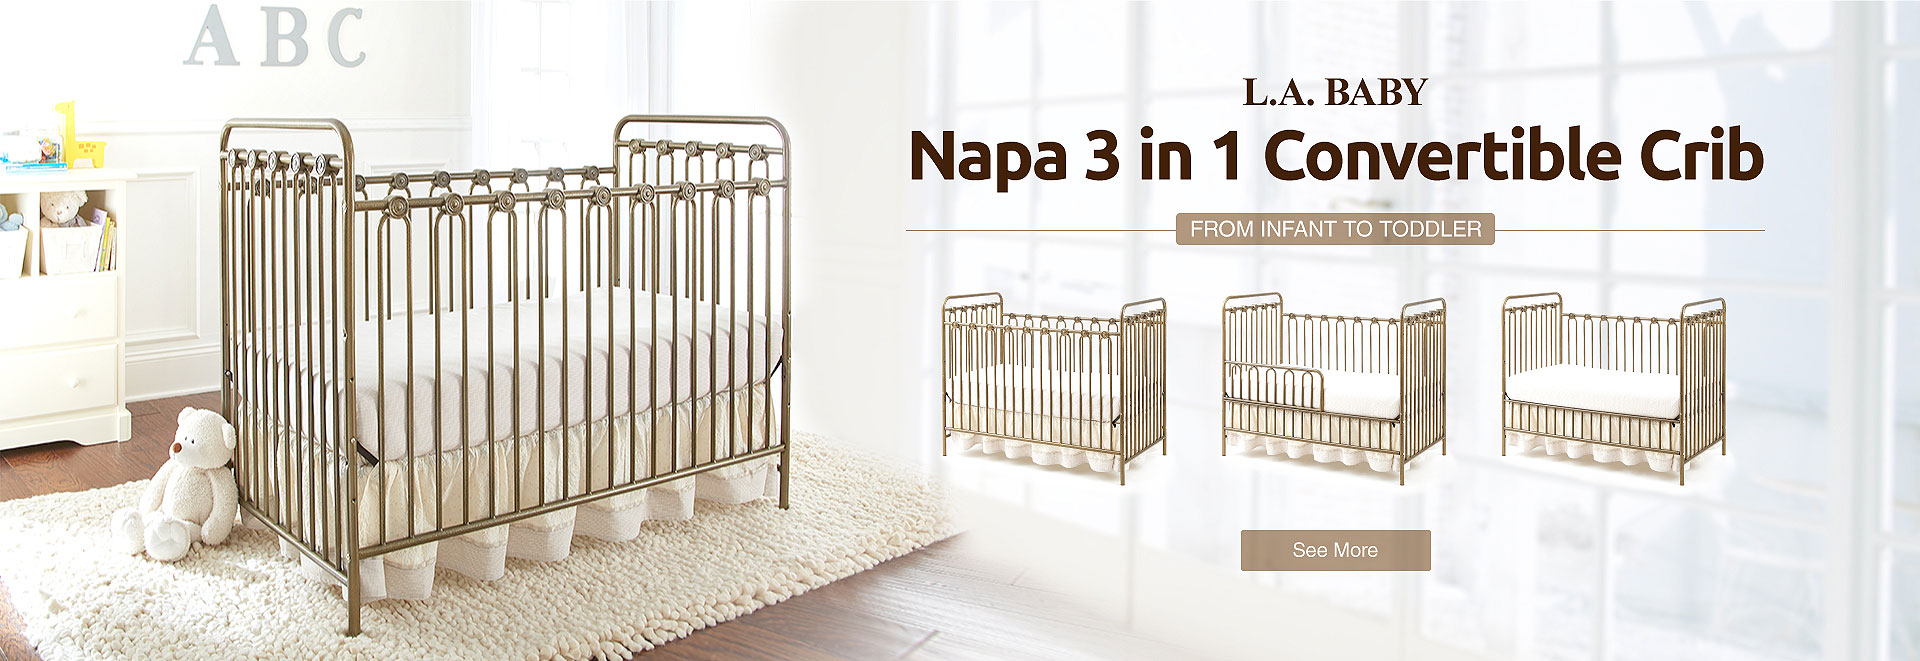 LA BABY USA: The Best Choice For Your Babyu200e